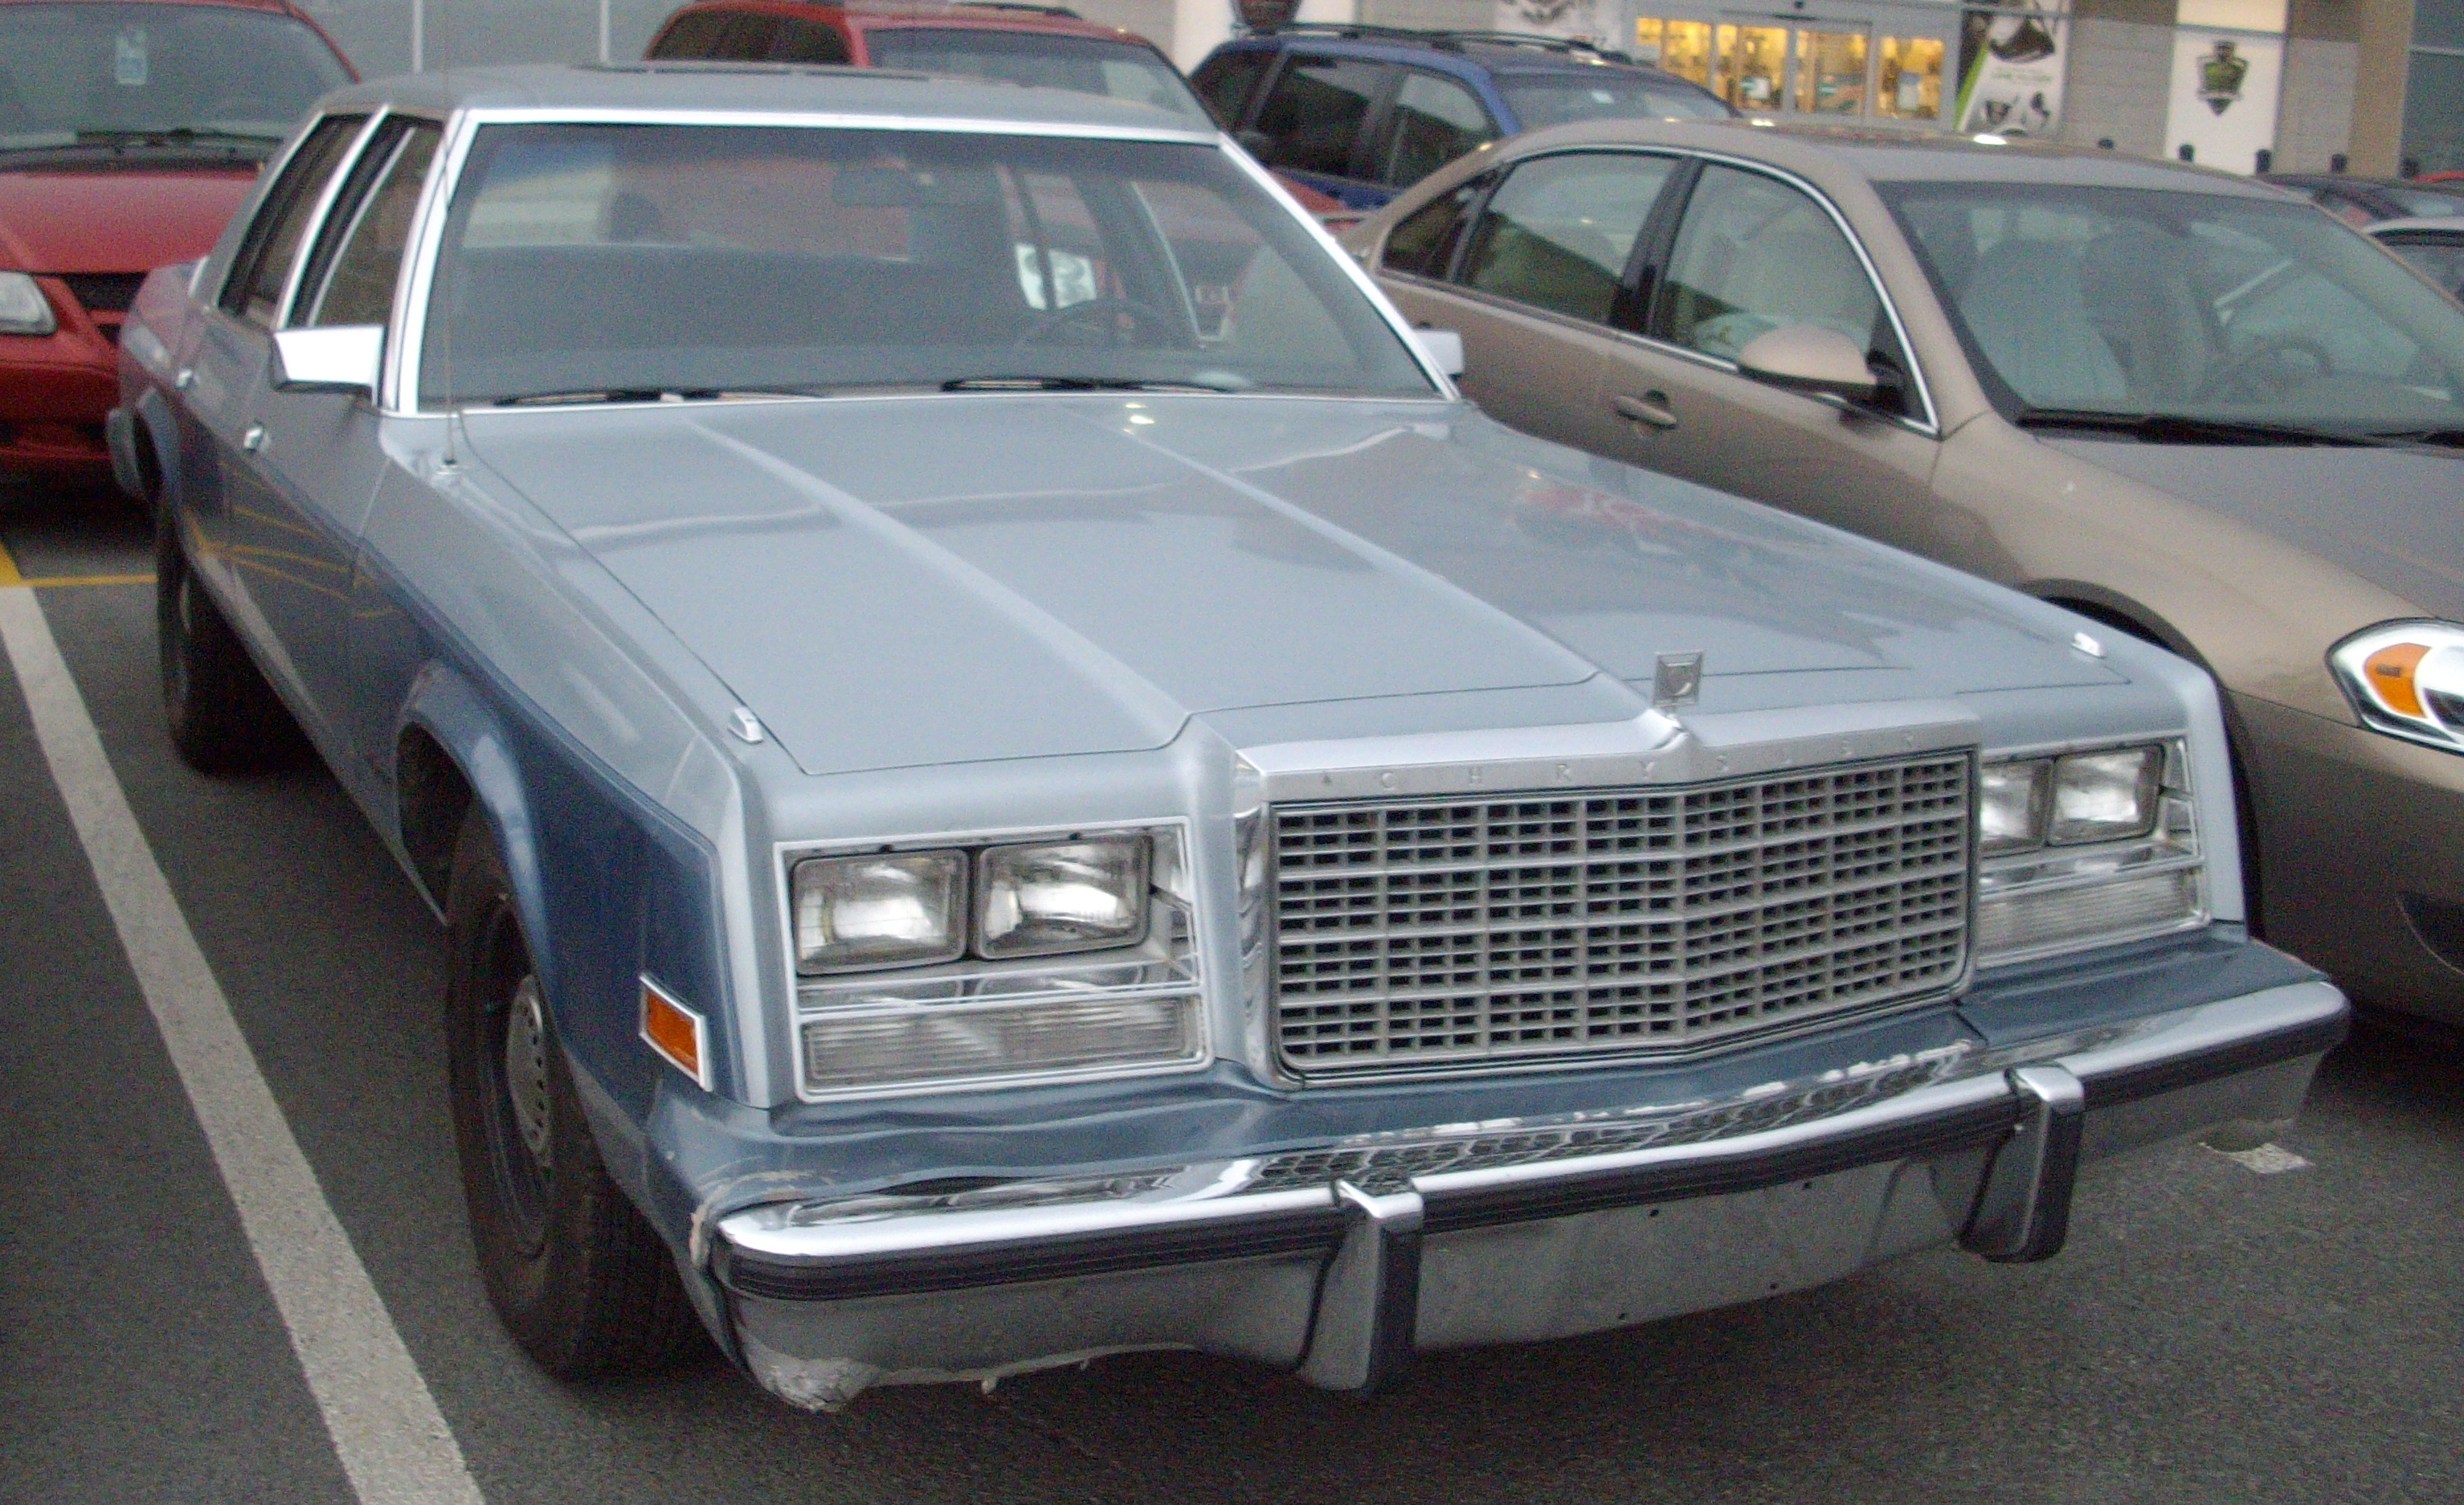 1979 chrysler newport the less flashy brother of the new yorker image